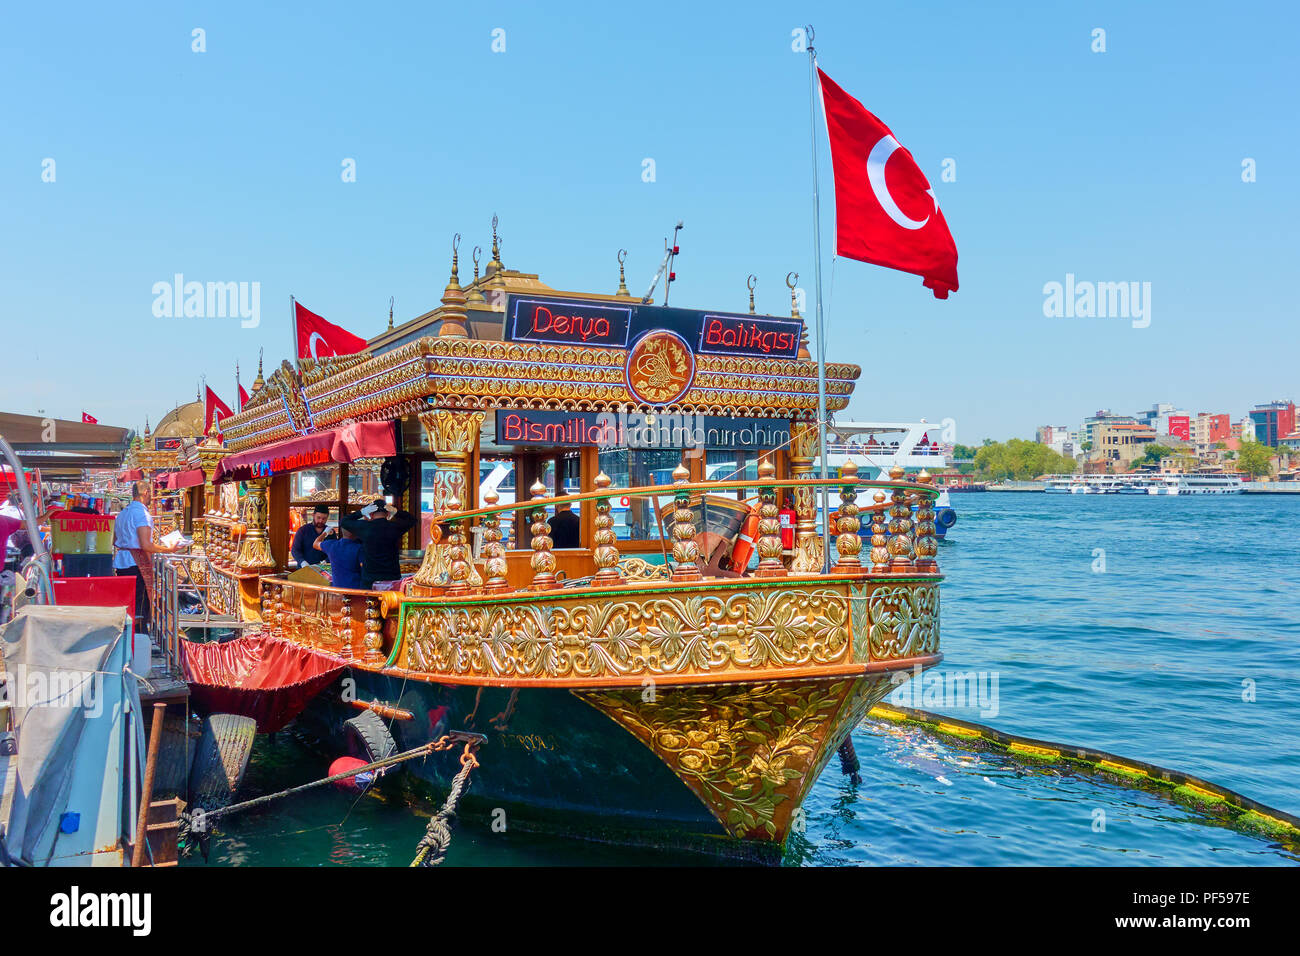 turkey country turkish people food stock photos turkey country